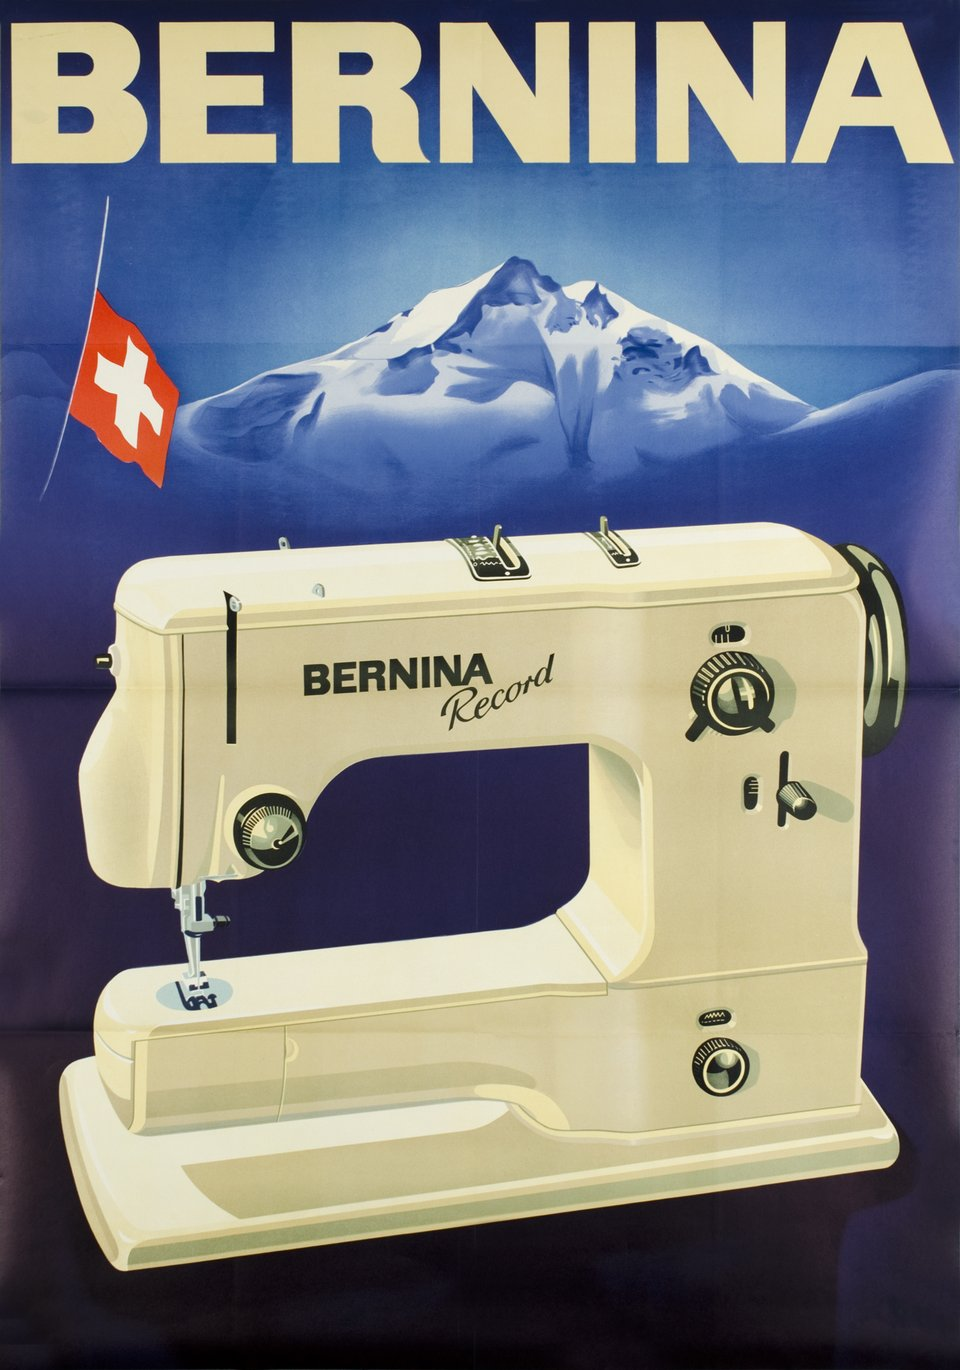 Bernina – Affiche ancienne –  ANONYME – 1955